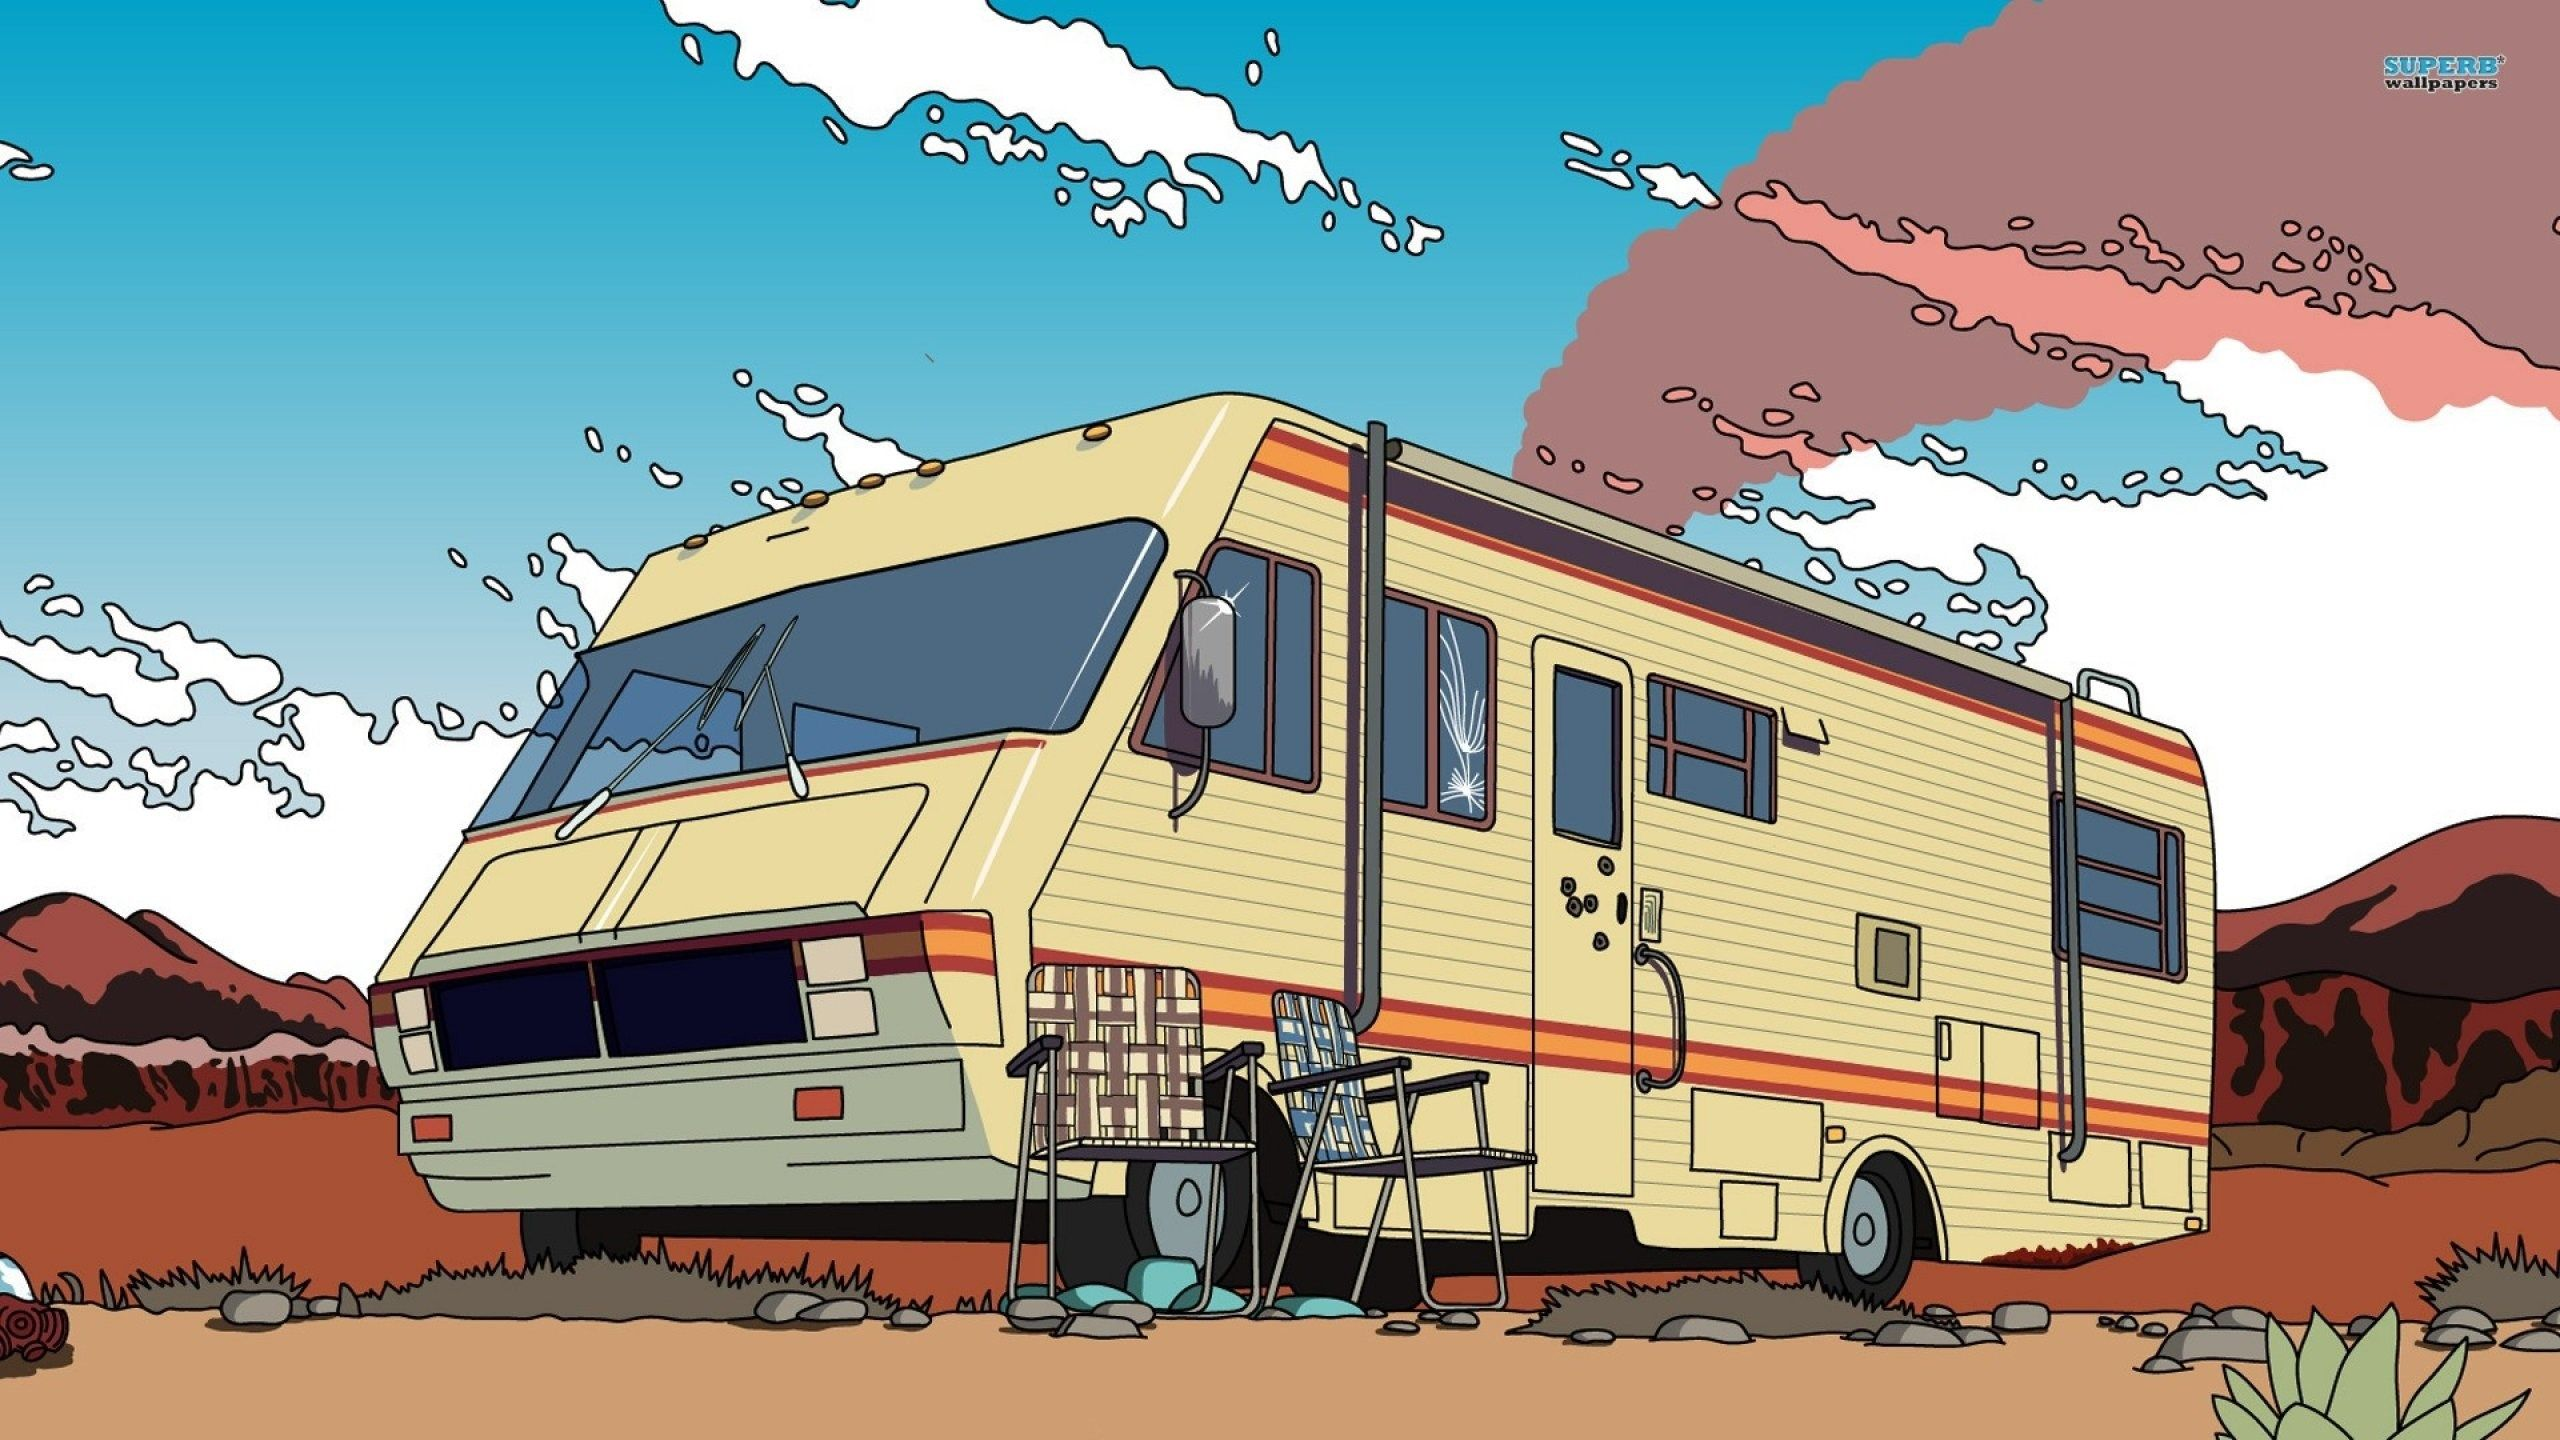 2560x1440px Breaking Bad Wallpapers 1080p High Quality By Valiant